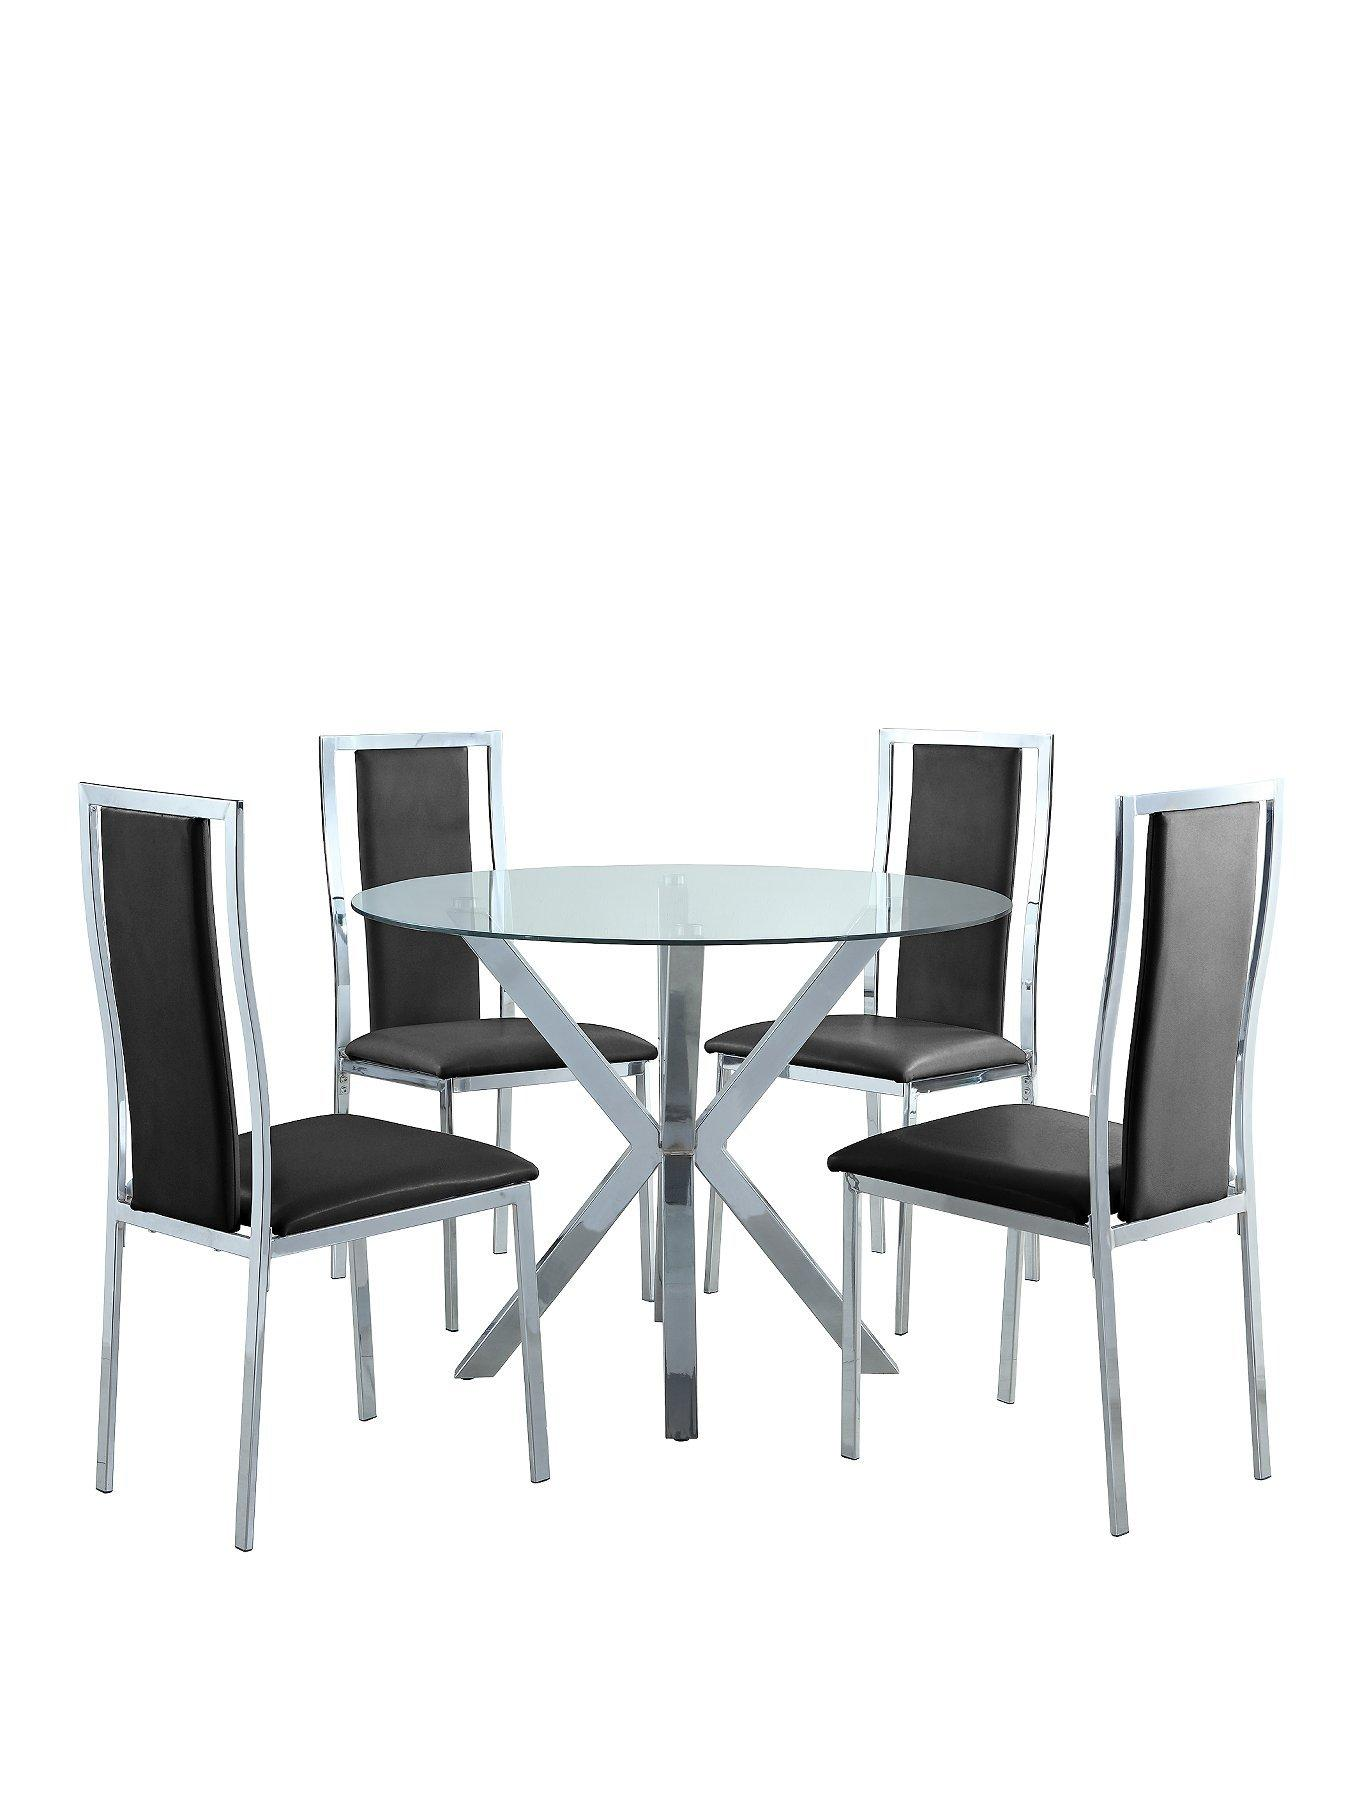 Dining room Dining table chair sets Home garden wwwvery